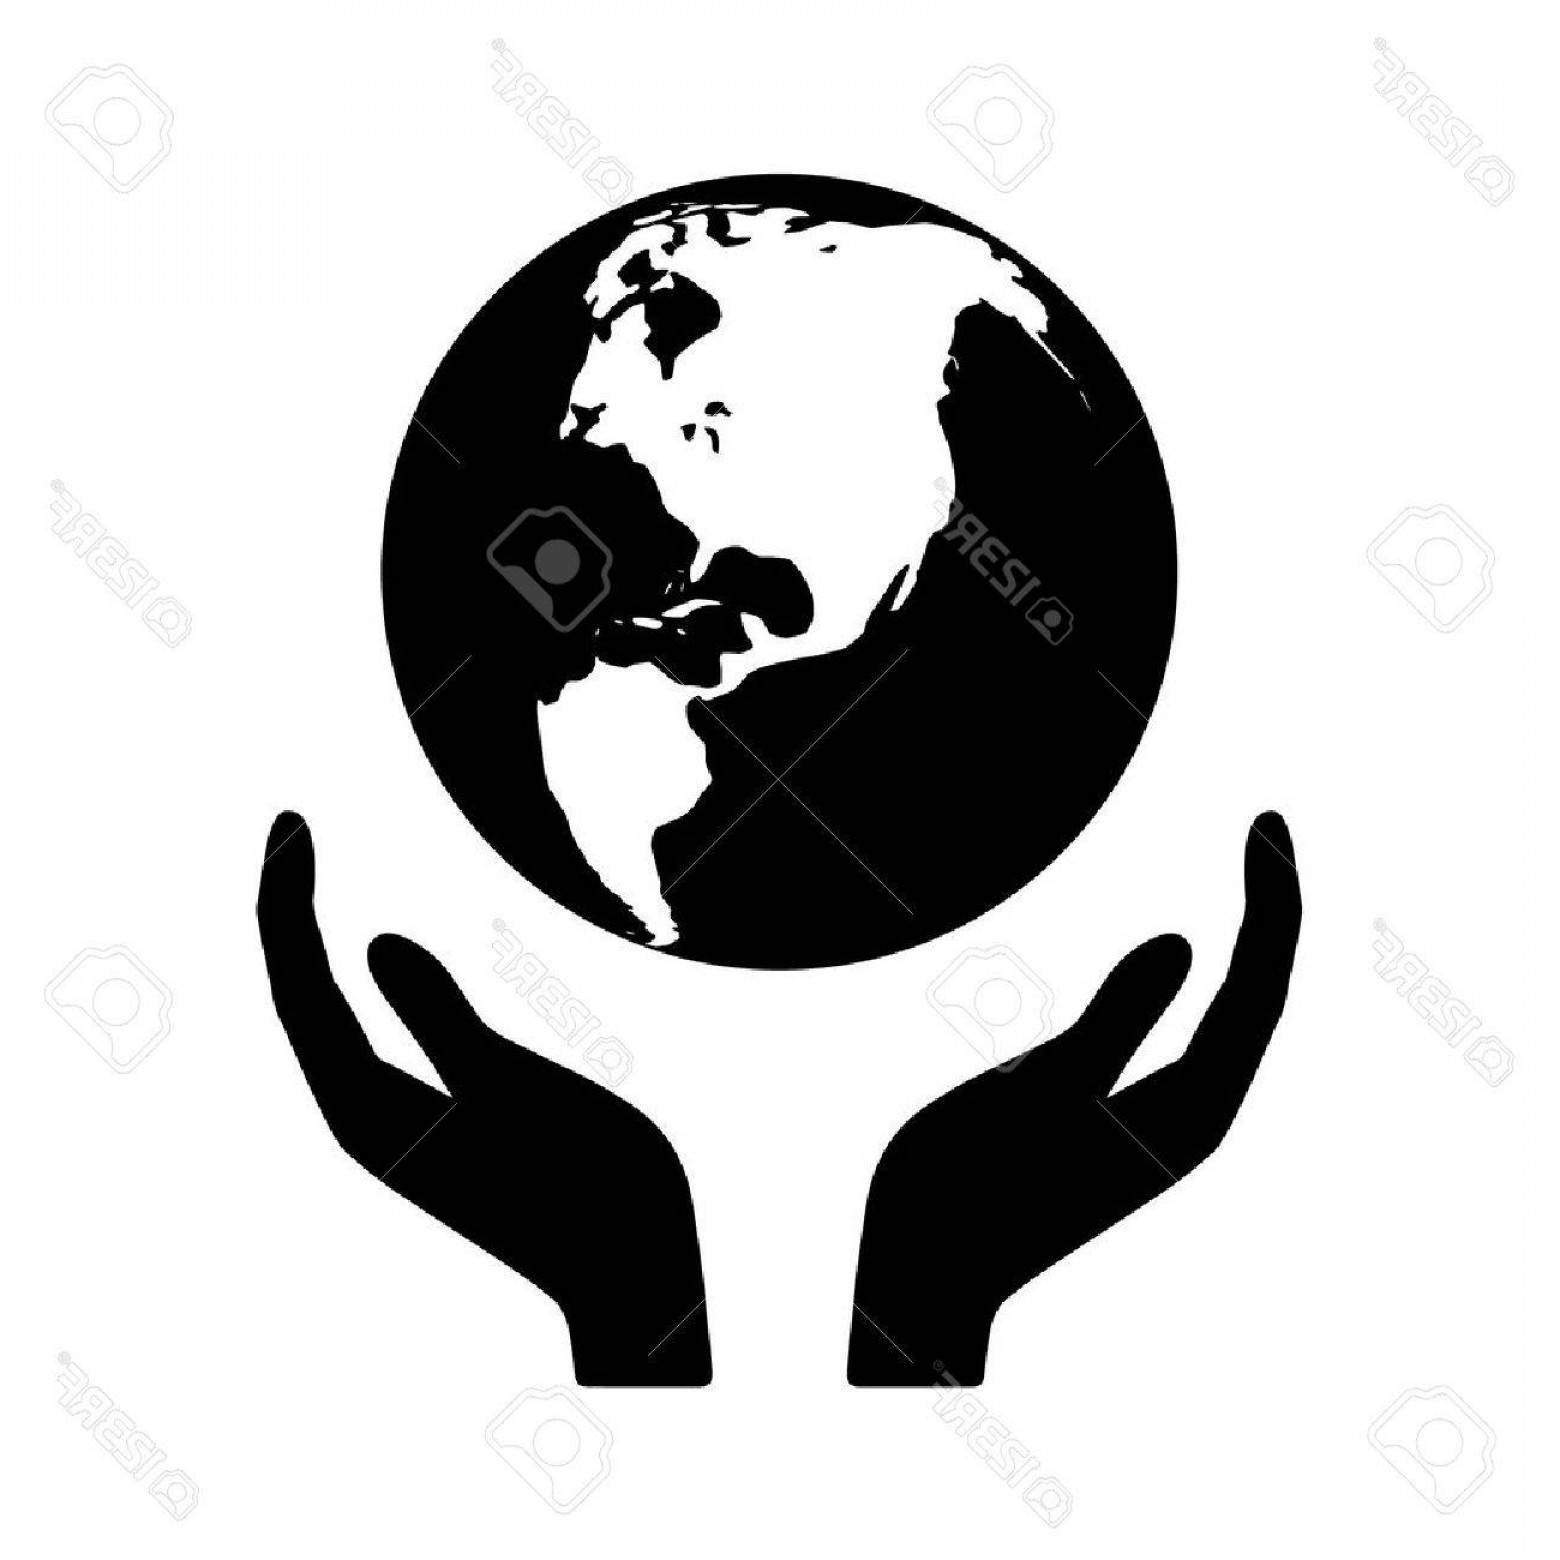 1560x1560 Photostock Vector Save The Planet Hand Palm And Earth Vector Flat